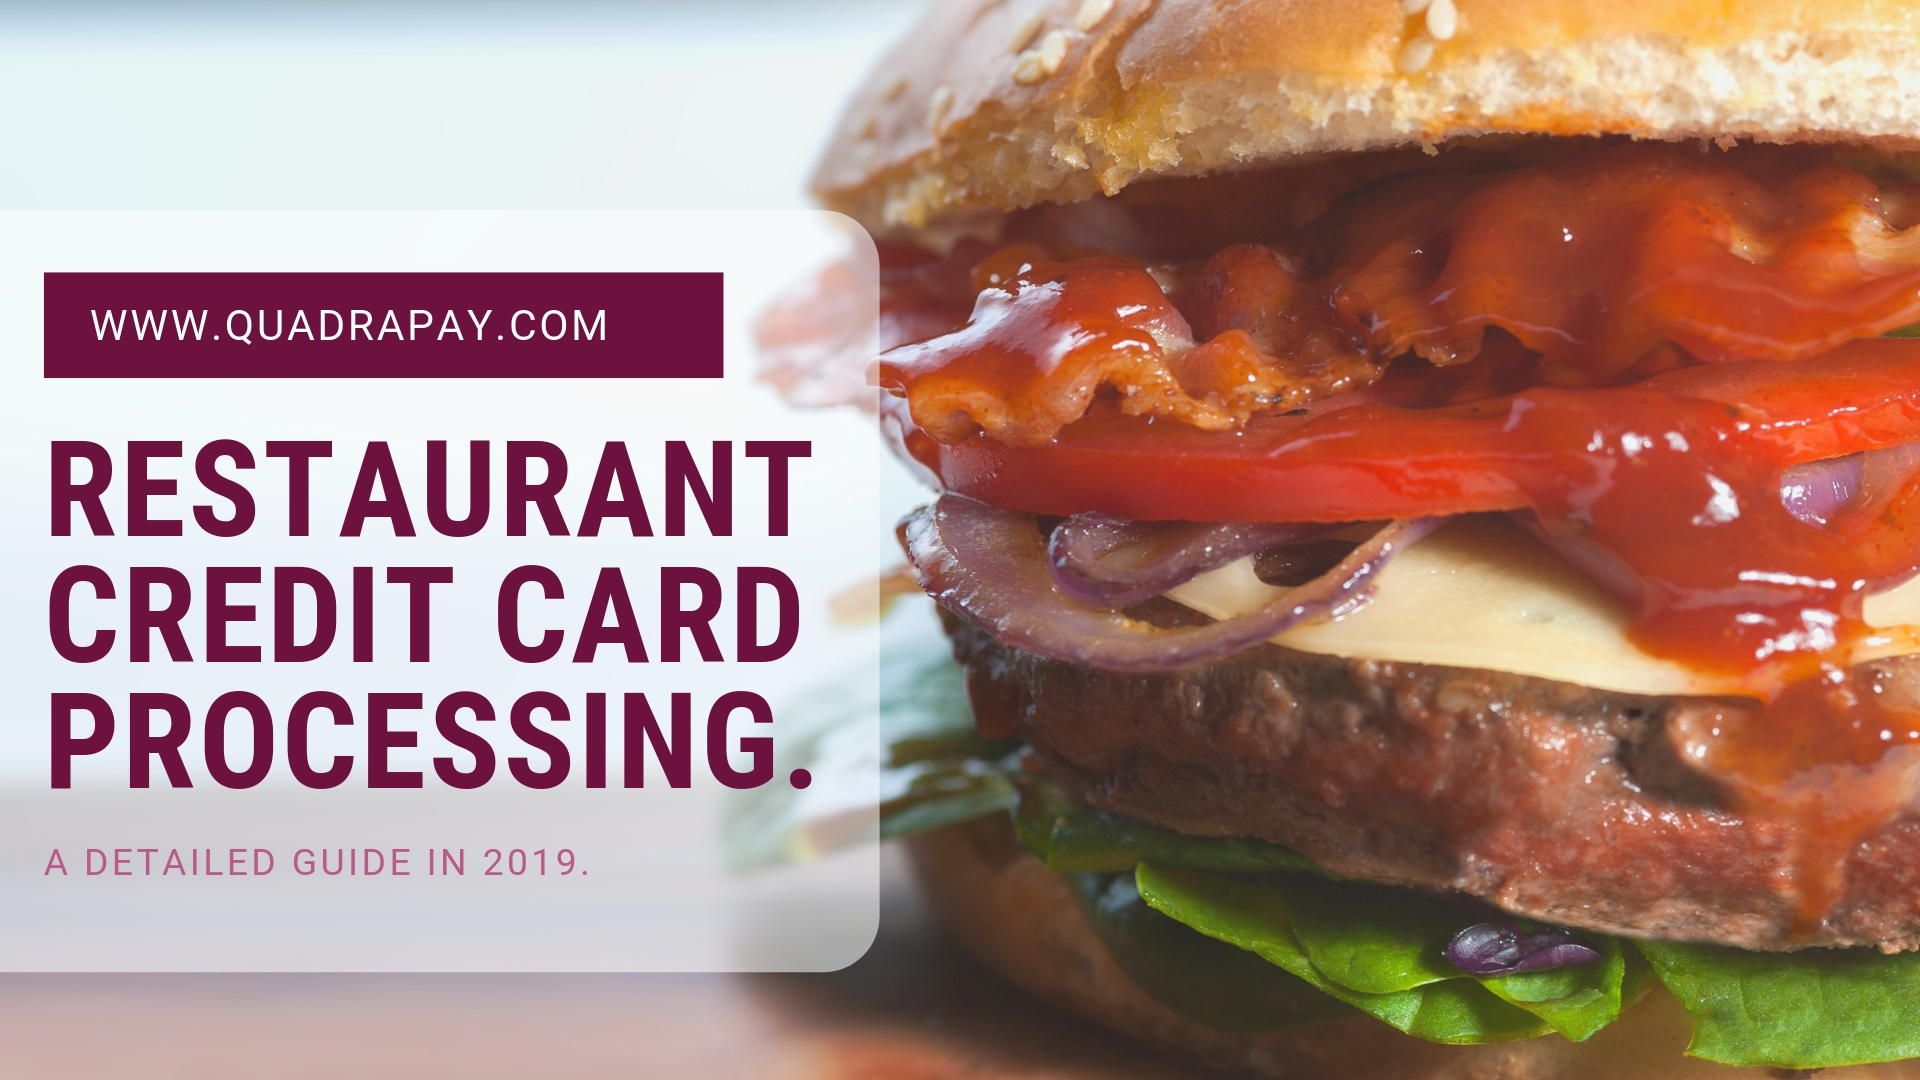 RESTAURANT CREDIT CARD PROCESSING BY QUADRAPAY